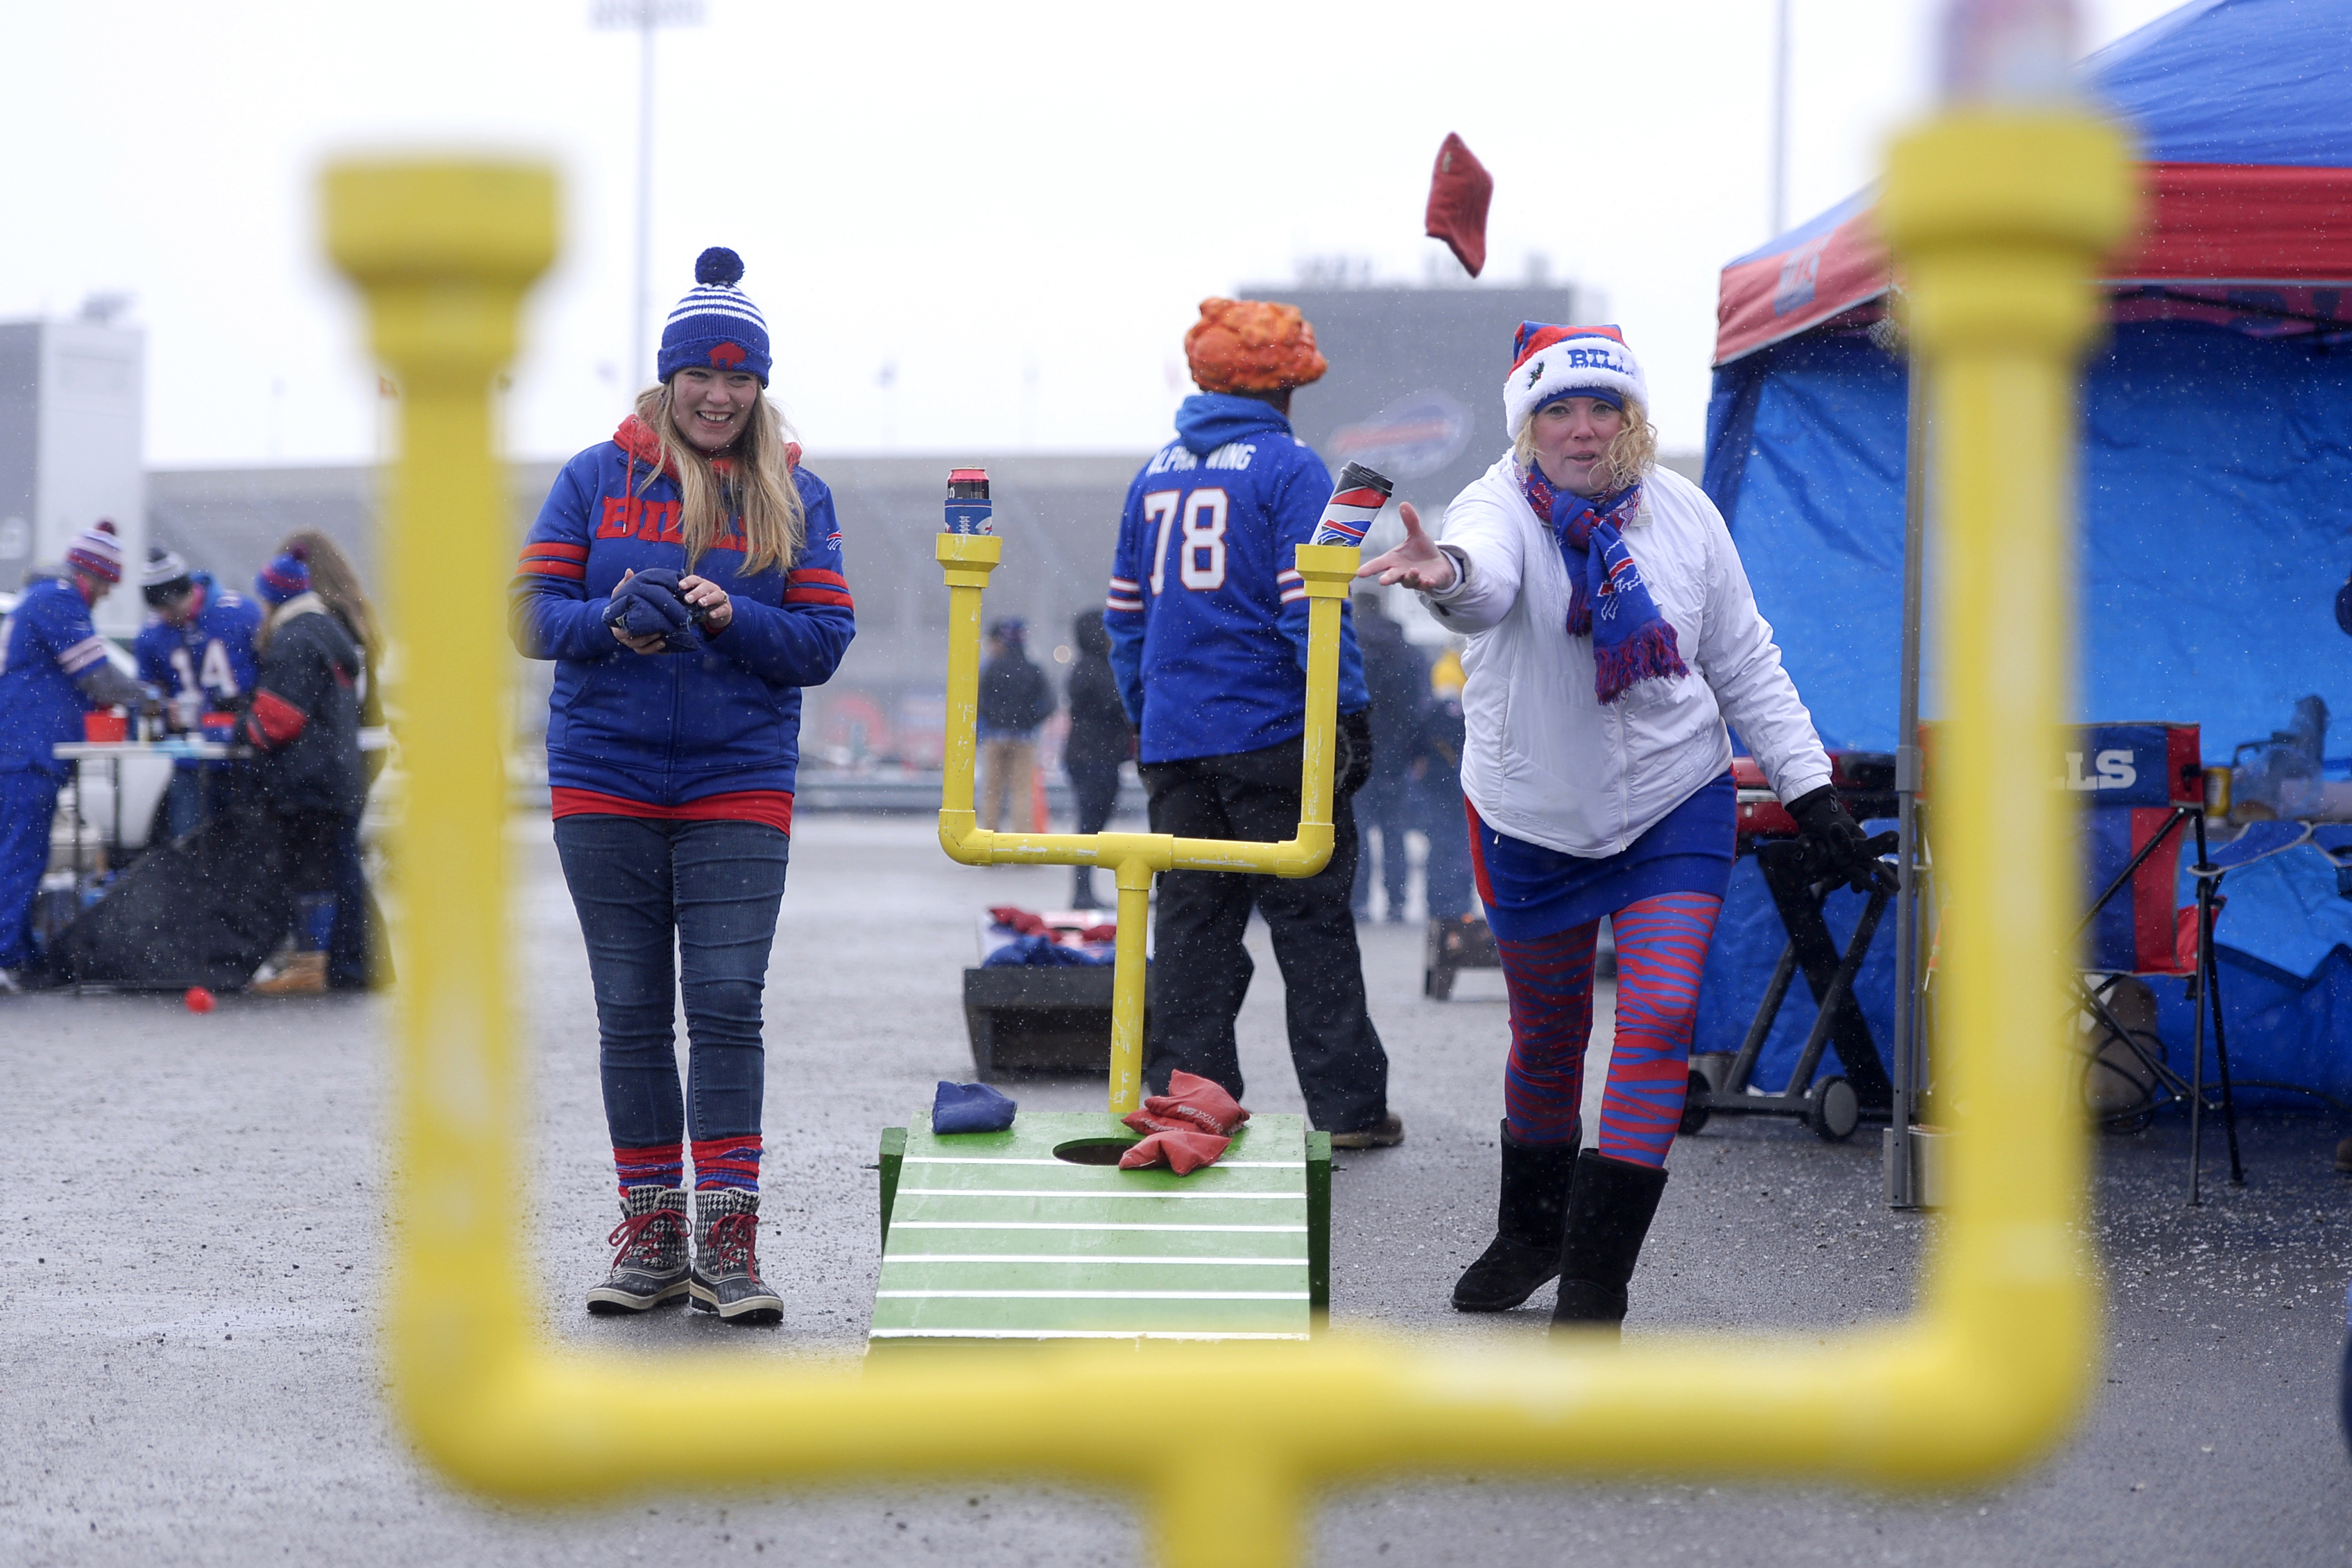 Jill Huffnagle, left, of Lockport, N.Y., and Lisa Lyons, of Amherst, N.Y., play a game while tailgating prior to an NFL football game between the Buffalo Bills and the Pittsburgh Steelers, Sunday, Dec. 11, 2016, in Orchard Park, N.Y. (AP Photo/Adrian Krau